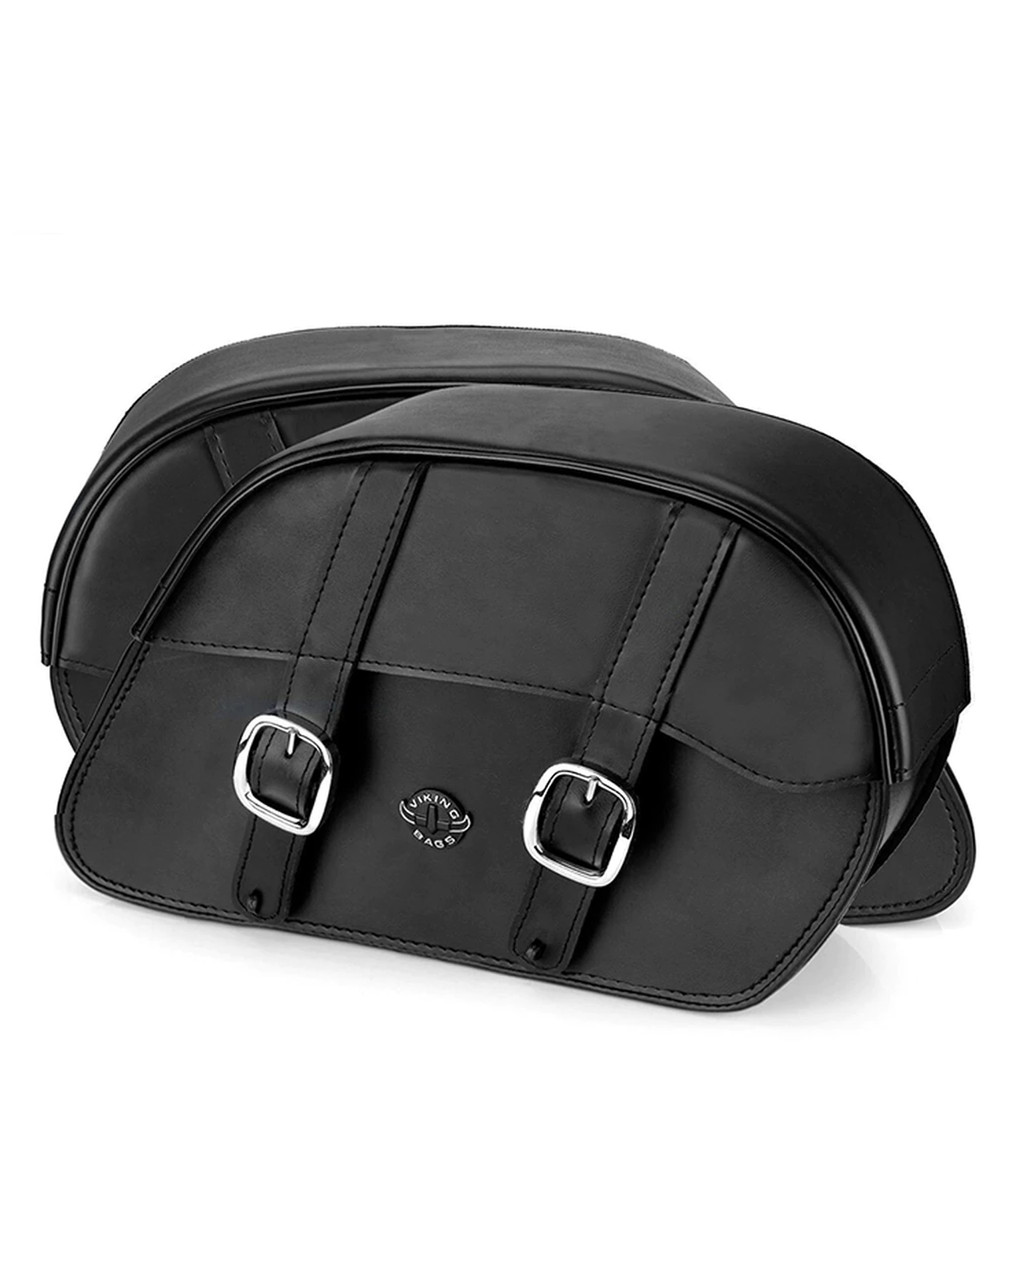 VikingBags Char Vital Large Padlock Double Strap Leather Motorcycle Saddlebags For Harley Softail Low Rider S FXLRS Both Bags View